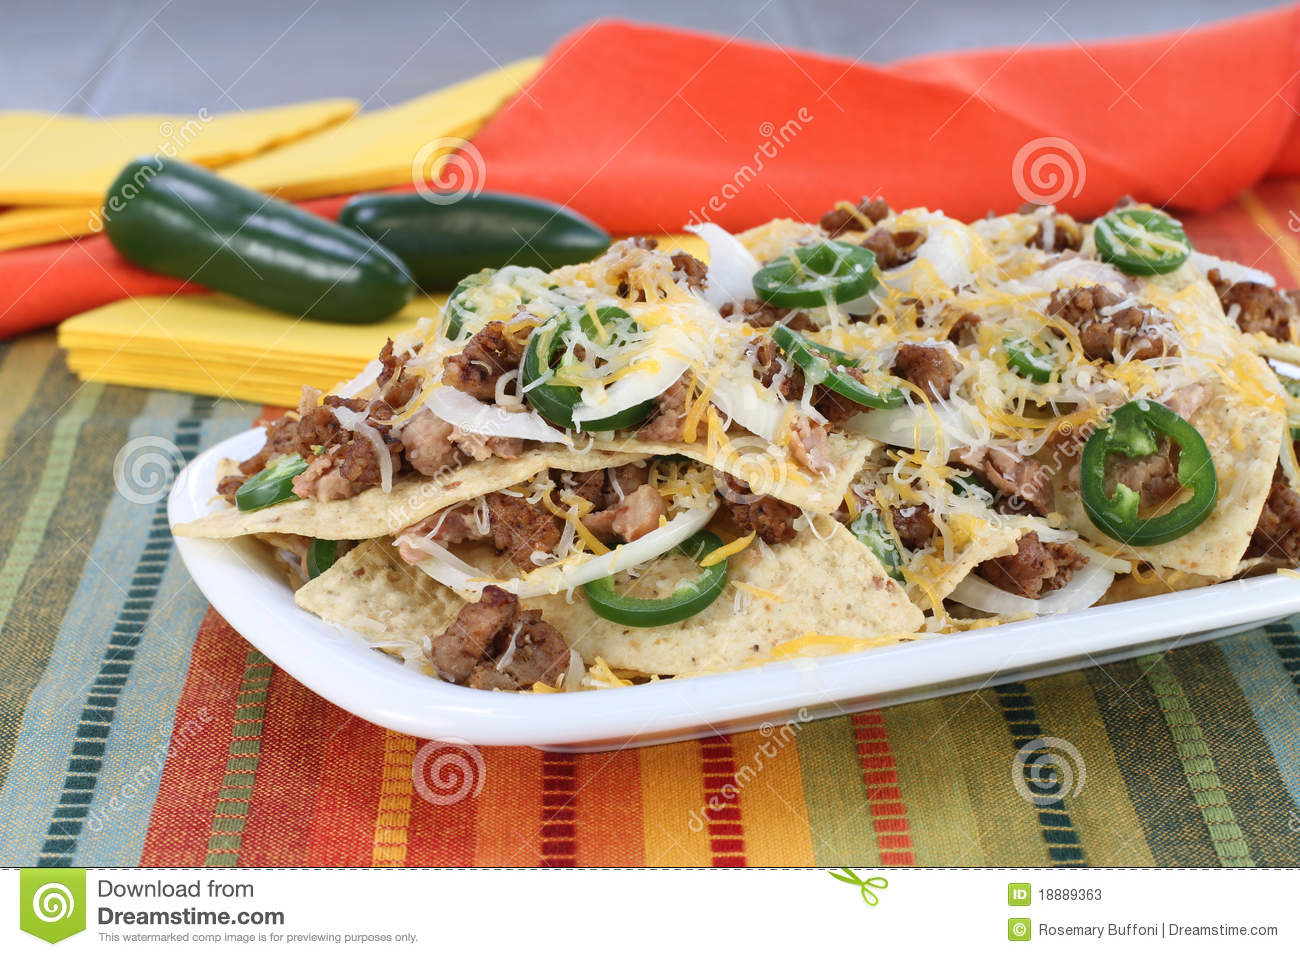 Mexican Sausage, Bean And Cheese Nachos Stock Photos - Image: 18889363